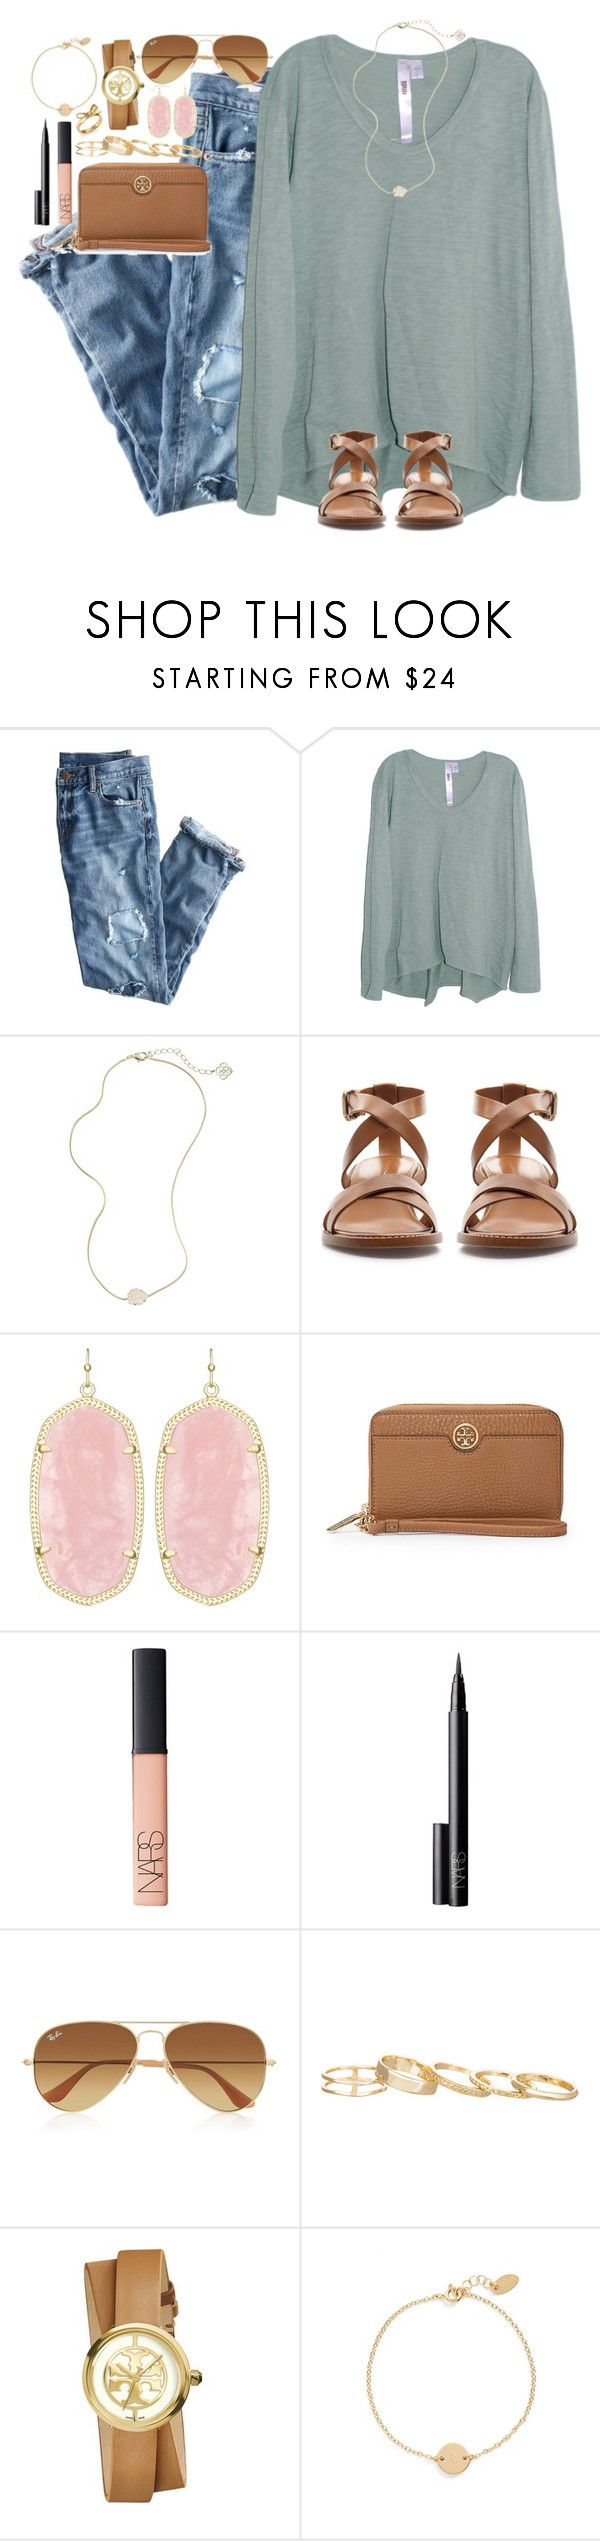 """We might not have any money, but we've got our love to pay the bills"" by lauren-hailey ❤ liked on Polyvore featuring J.Crew, Wilt, Kendra Scott, Zara, Tory Burch, NARS Cosmetics, Ray-Ban, Nashelle and Kate Spade"